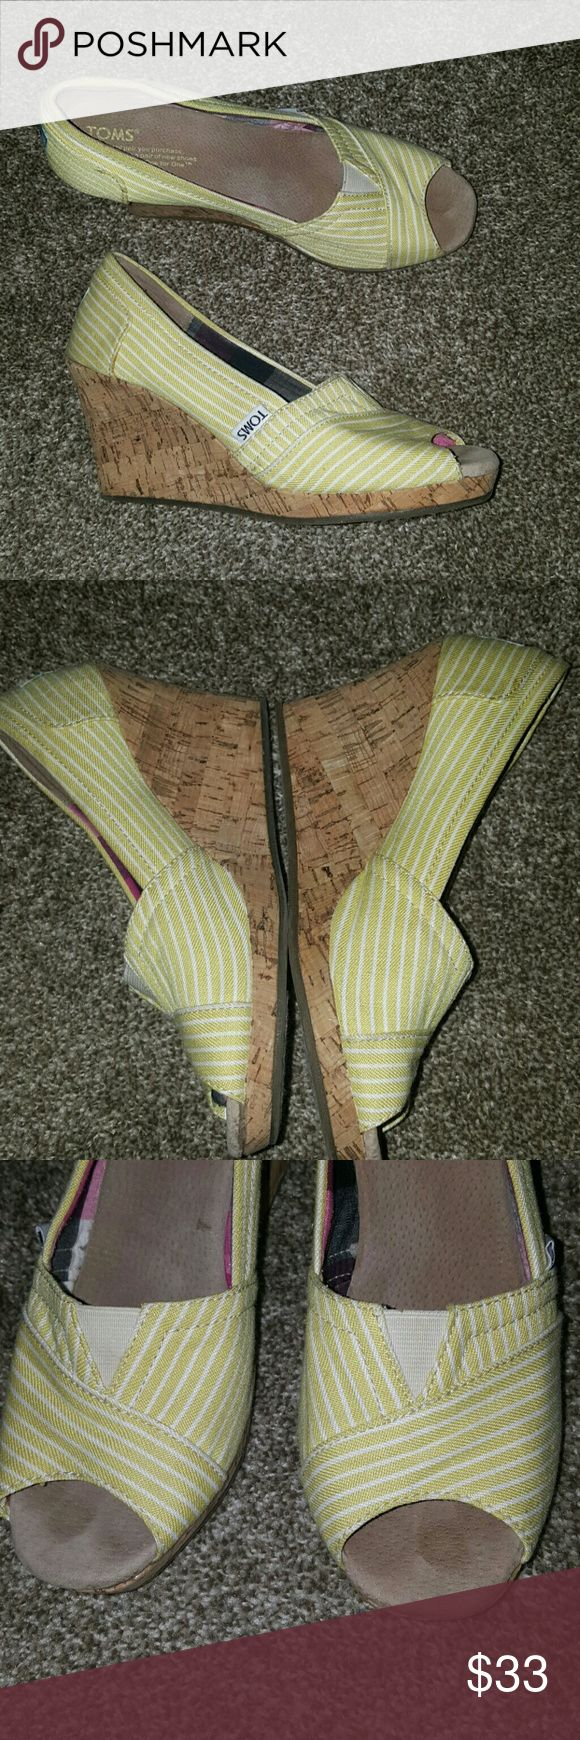 TOMS Yellow/White Striped Wedge Sandals Great used condition.  Light dirt spot (pic 5).  Please review all photos before purchasing.  Thanks TOMS Shoes Wedges